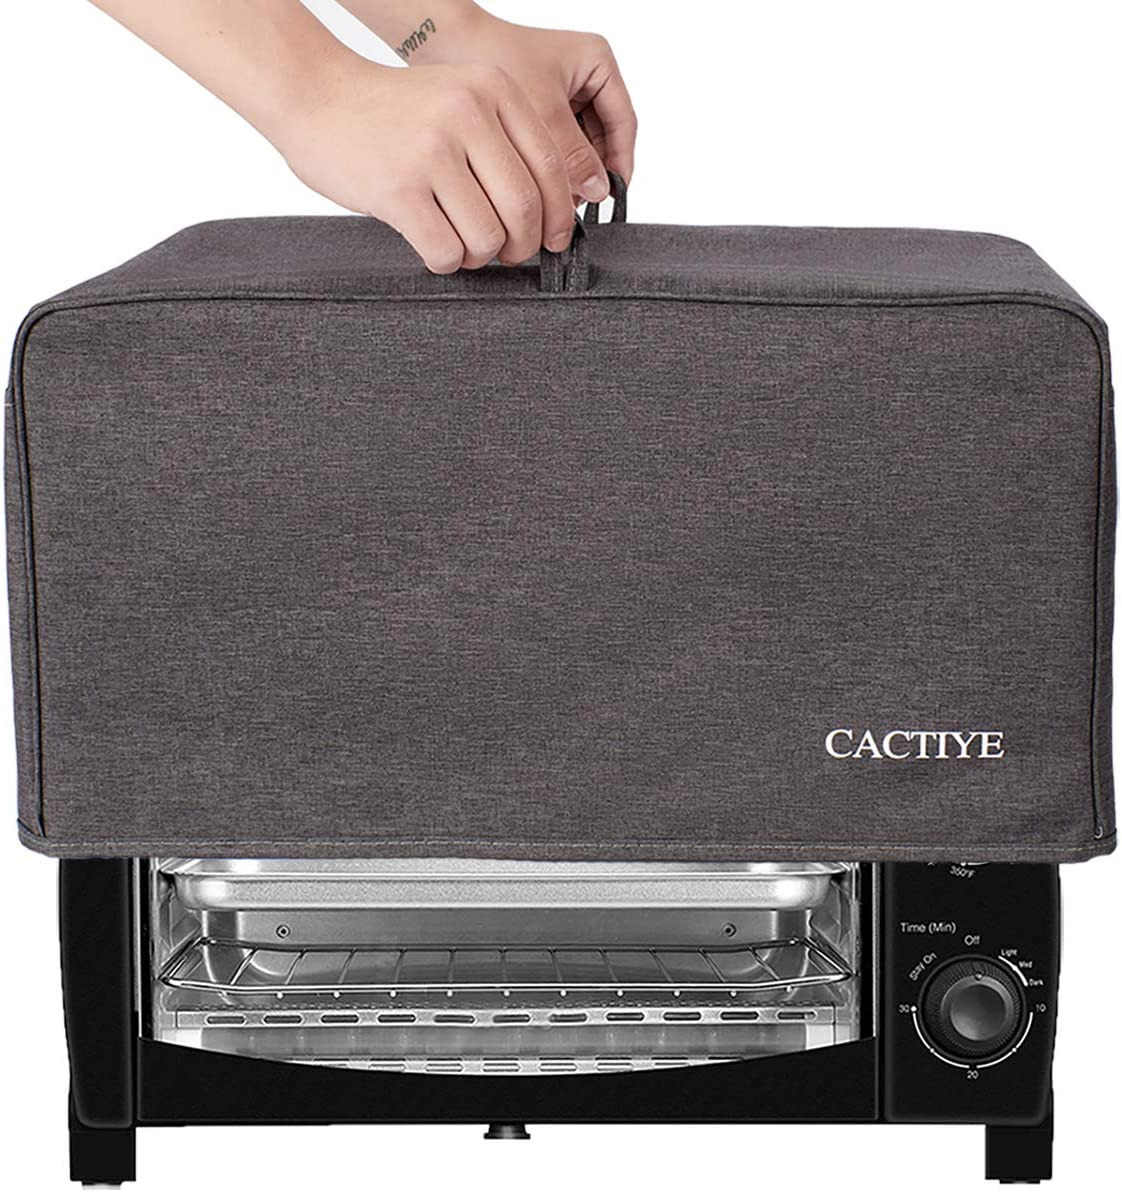 CACTIYE Toaster Oven Dust Cover with Accessory Pockets Compatible with Hamilton Beach 6 Slice of Toaster Oven (GRAY)